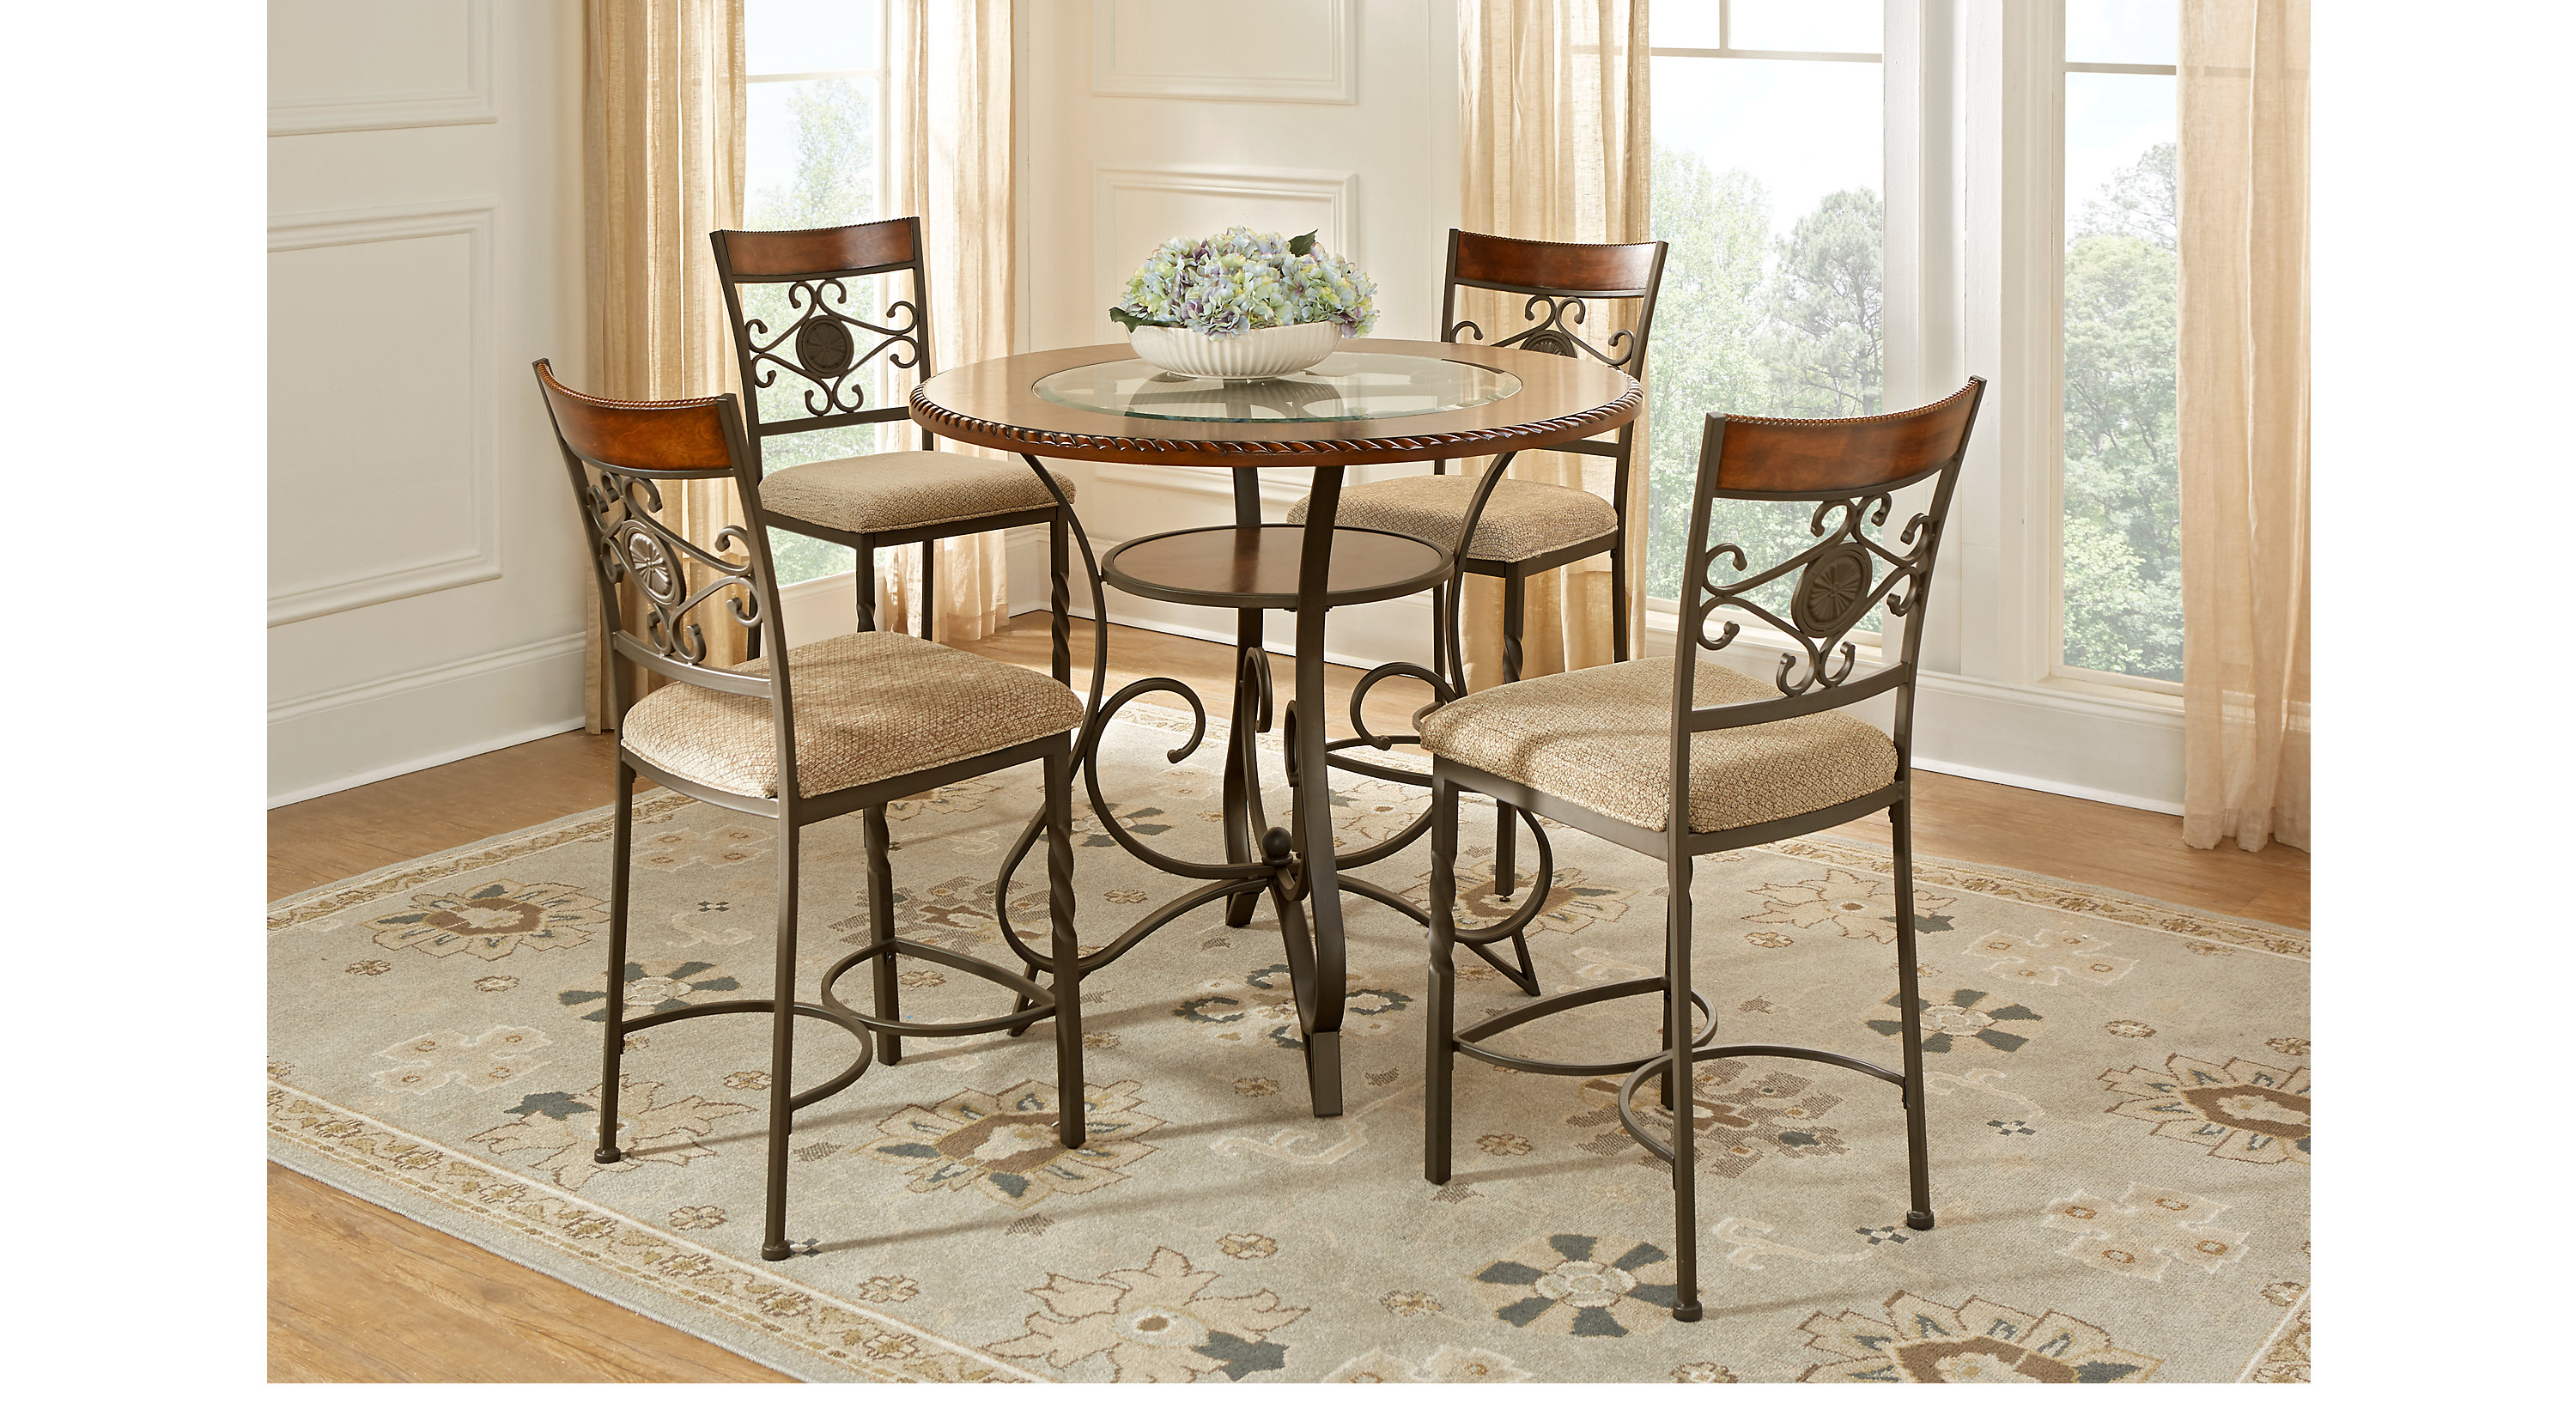 Duval Street Cherry 5 Pc Counter Height Dining Set   Glass Top    Transitional